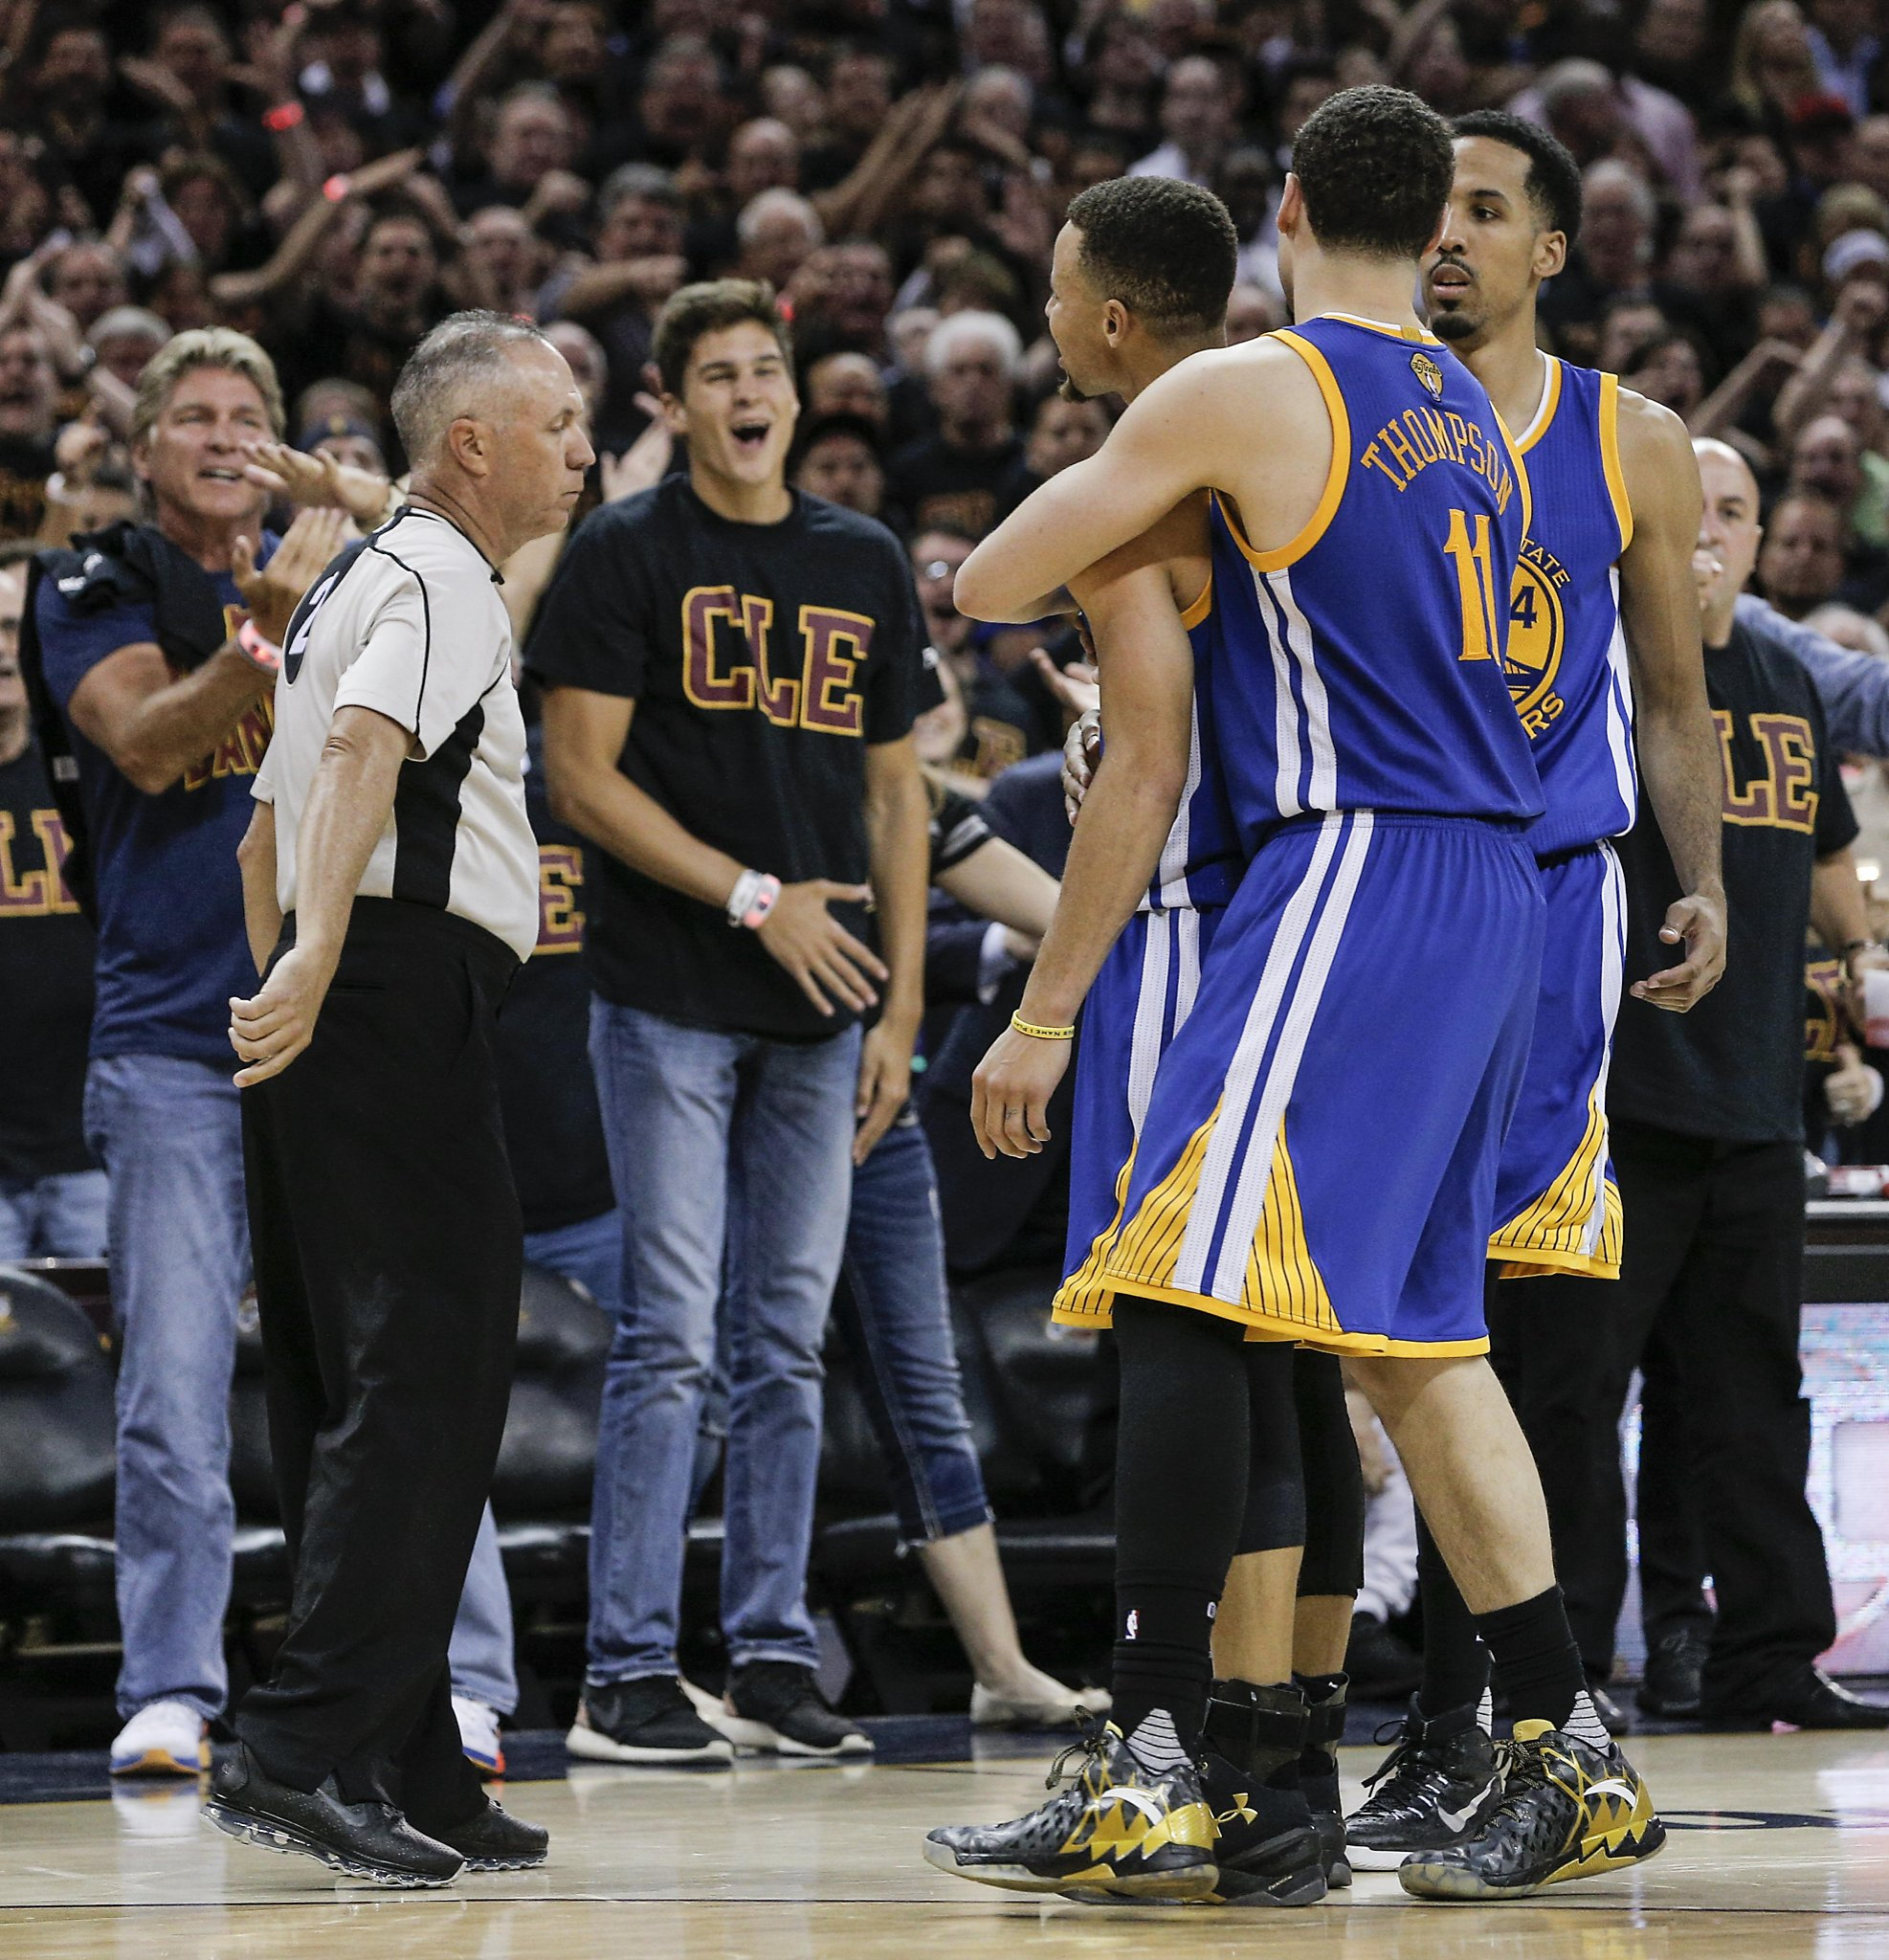 e18dda61c47d Ayesha Curry apologizes for Finals Twitter outburst - SFGate